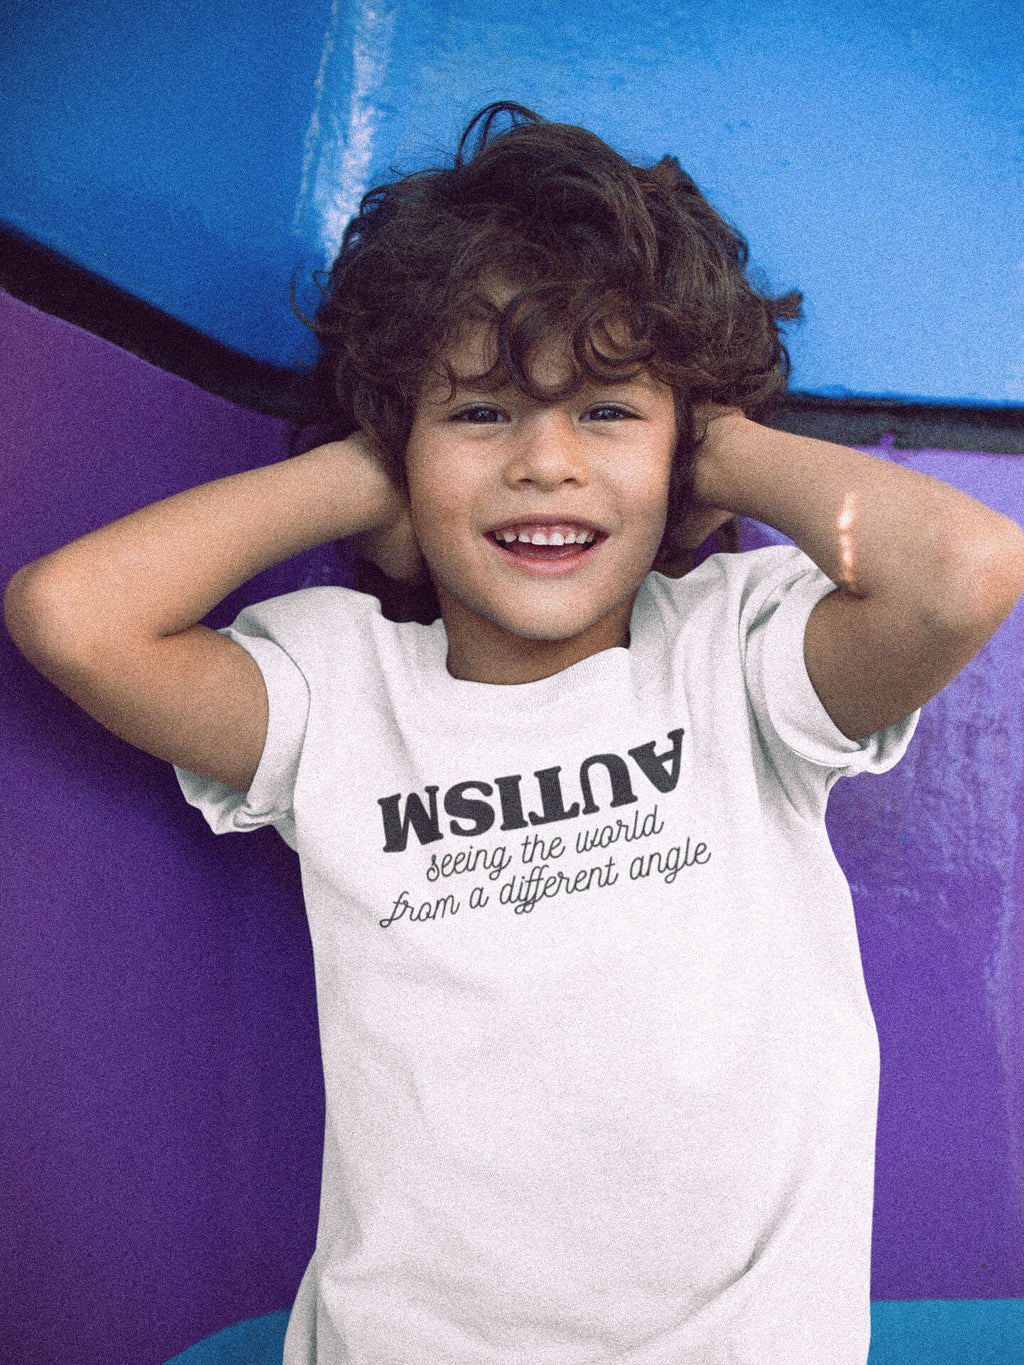 Kid Wearing Autism Seeing The World From A Different Angle T-Shirt Covering Ears